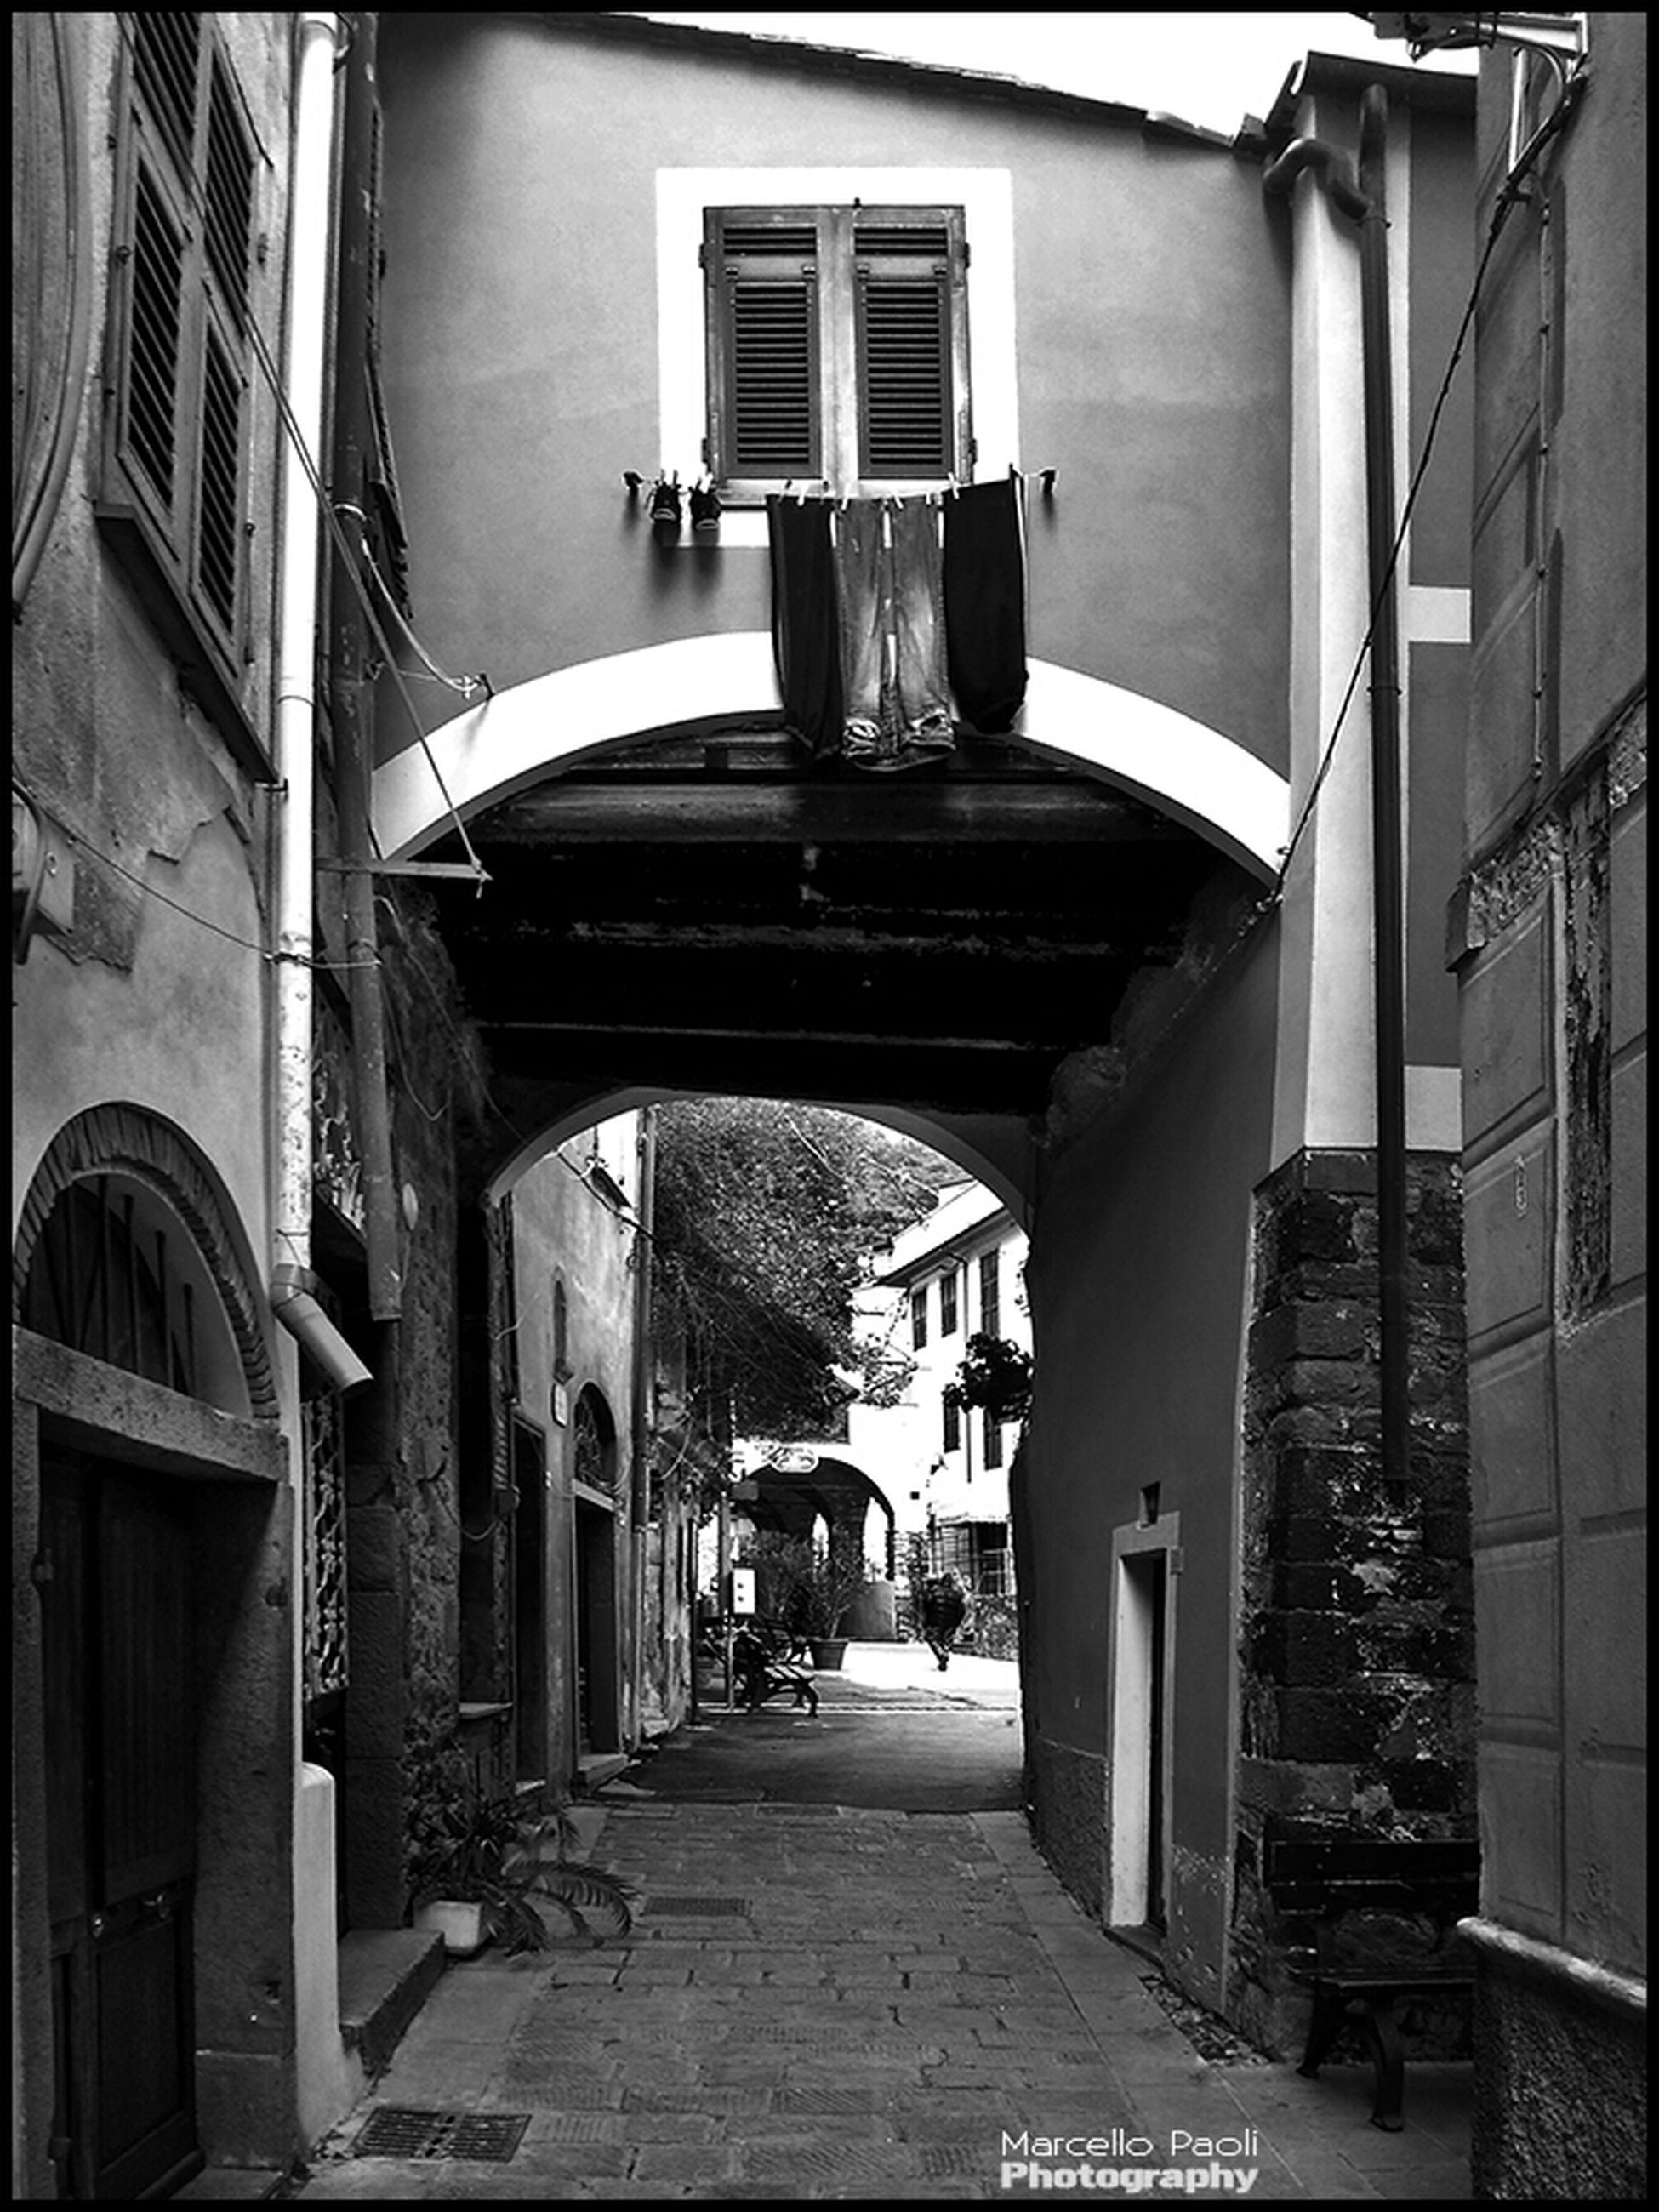 architecture, built structure, building exterior, the way forward, narrow, residential building, residential structure, building, diminishing perspective, alley, house, empty, arch, street, city, window, vanishing point, long, walkway, cobblestone